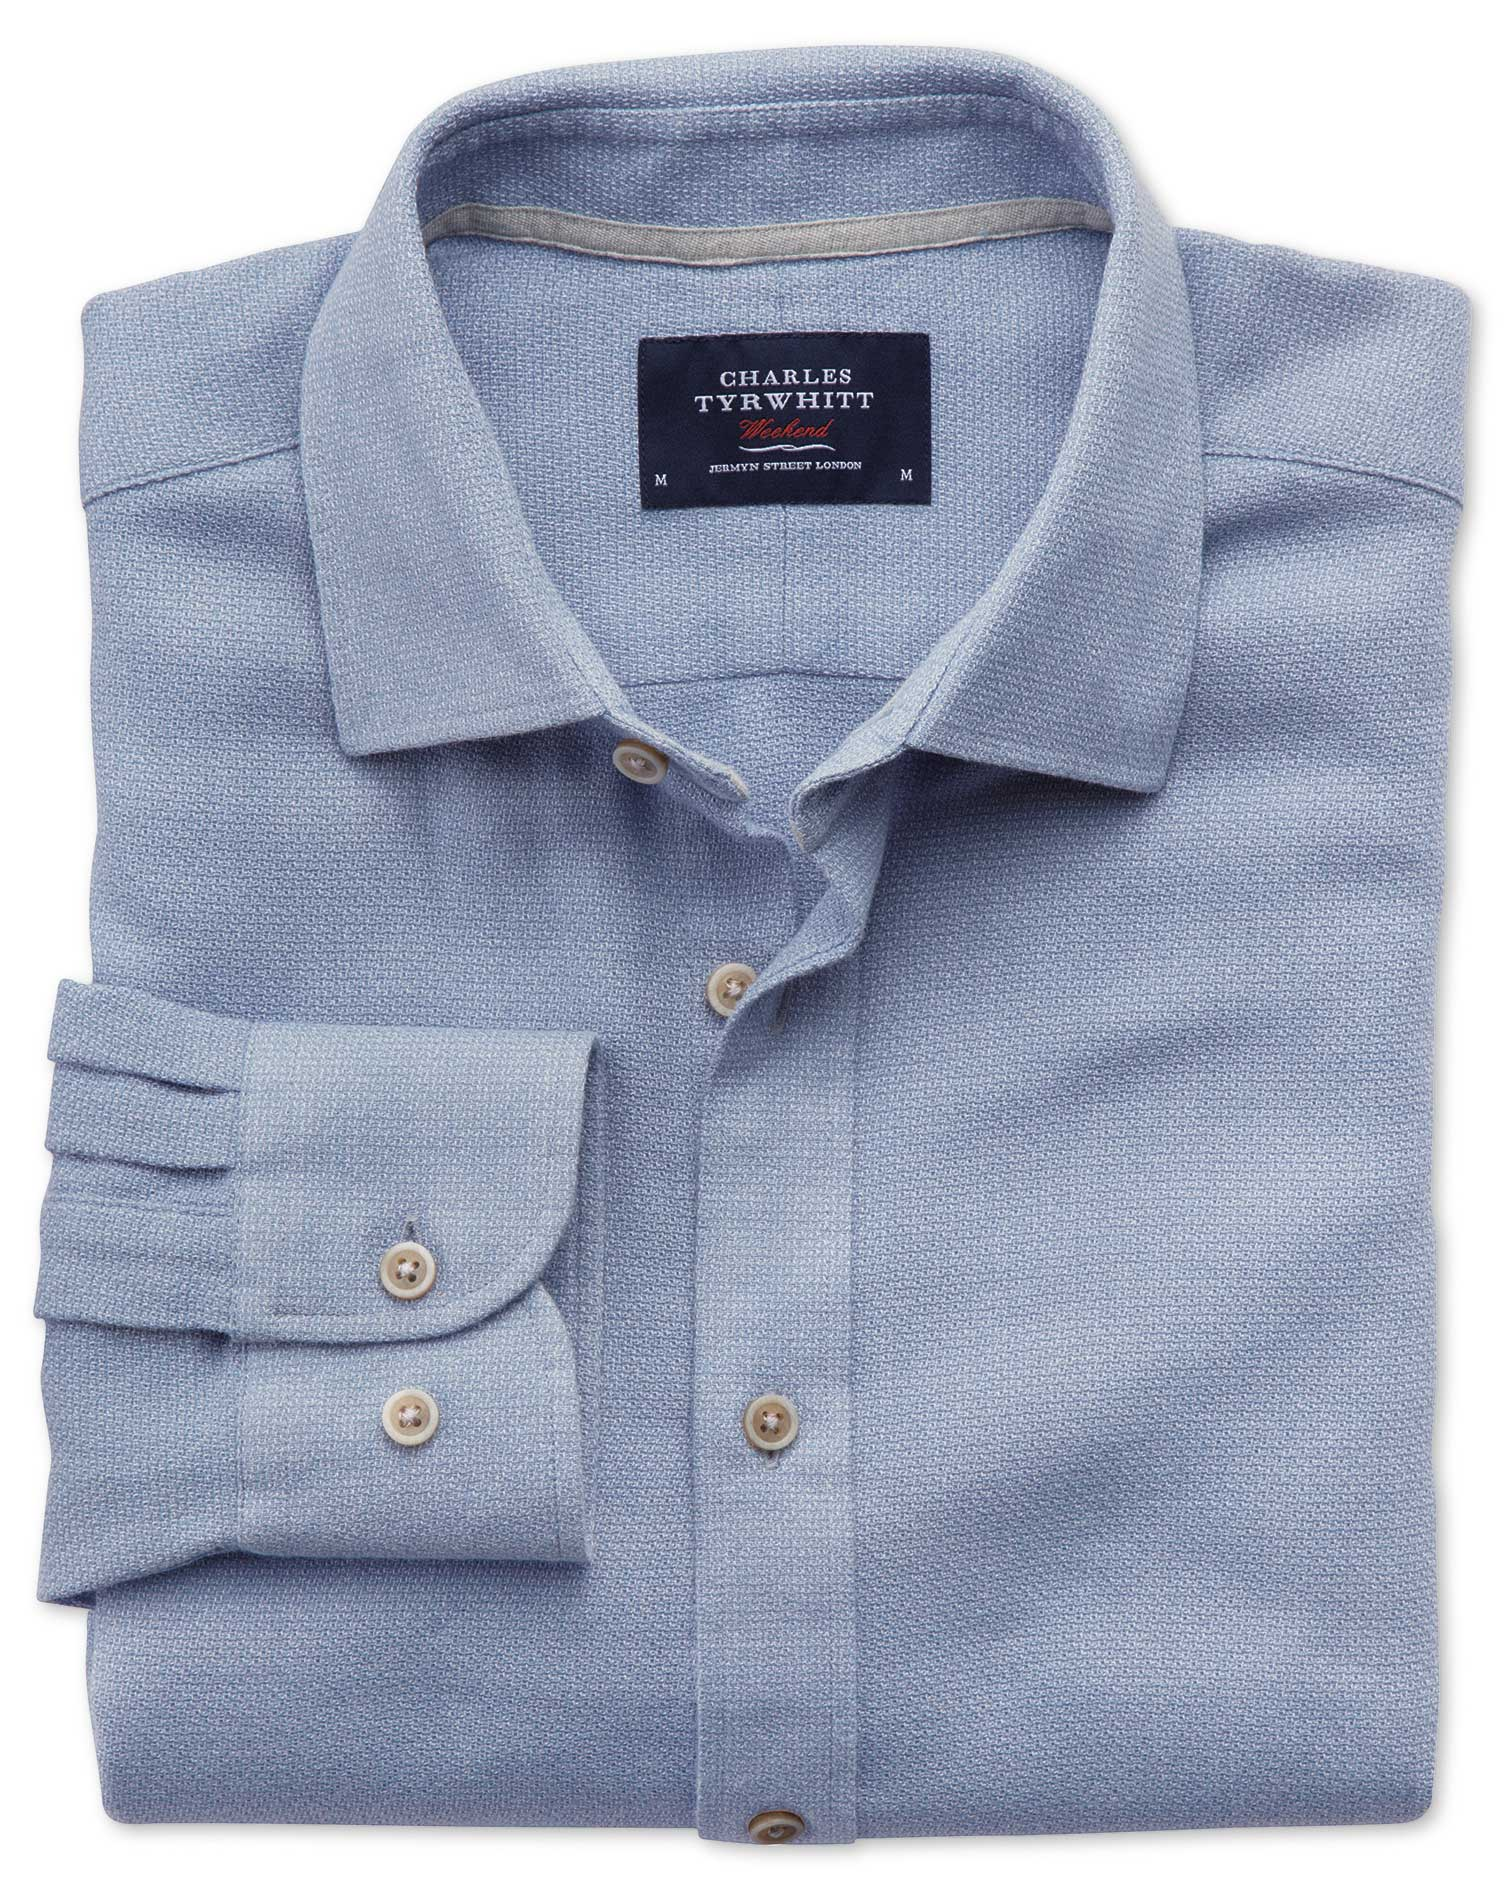 Classic Fit Mouline Mid Blue Textured Shirt Charles Tyrwhitt